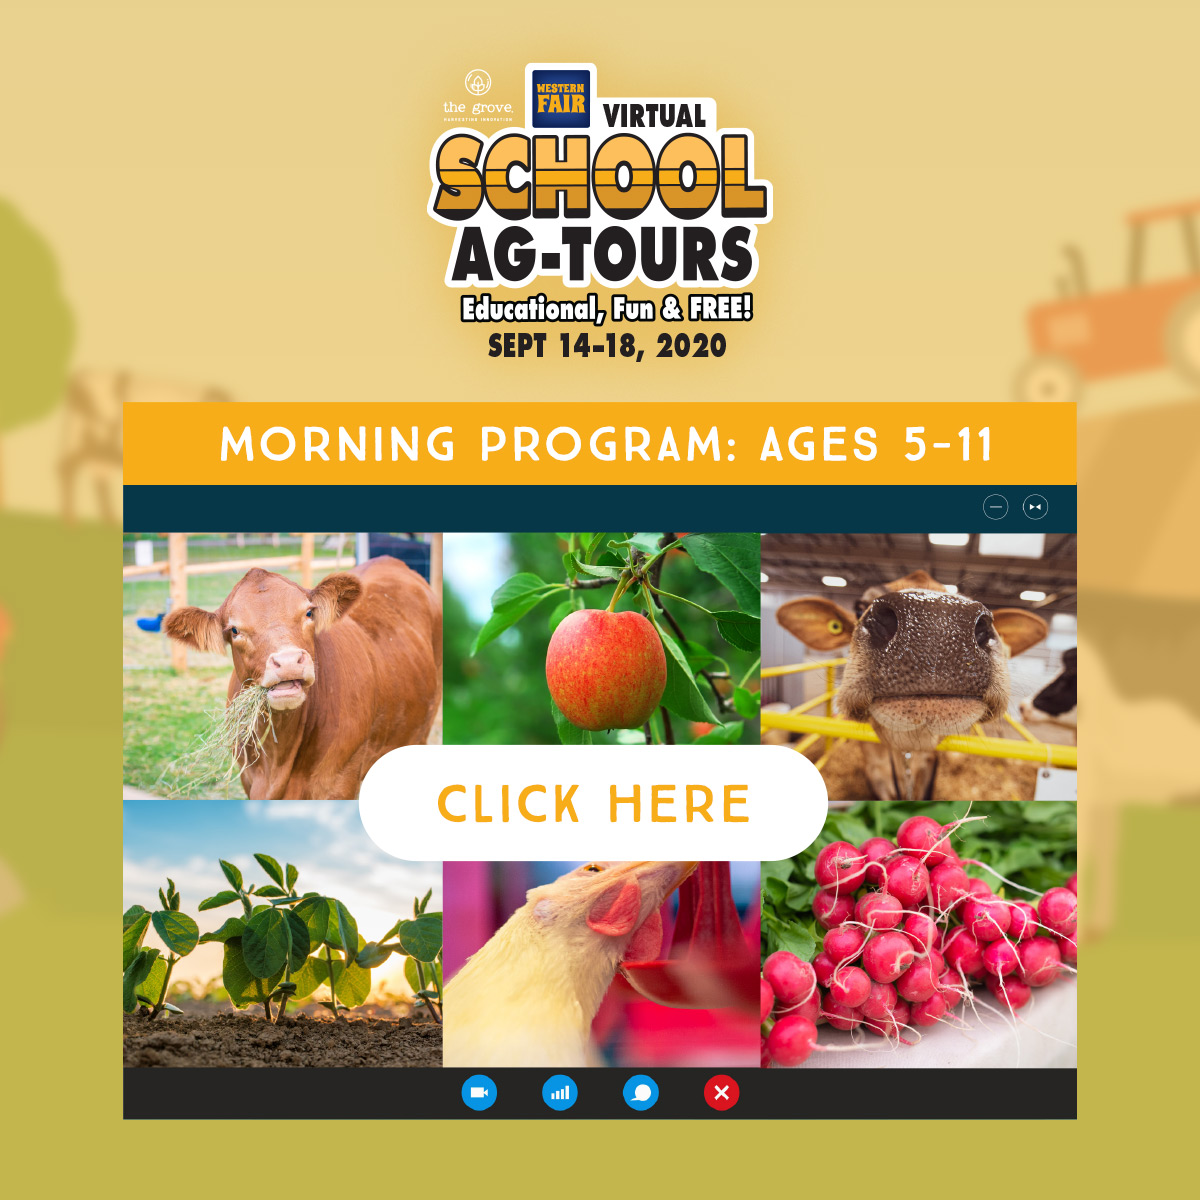 School Ag-Tours: Morning Program: Ages 5-11 - Click Here